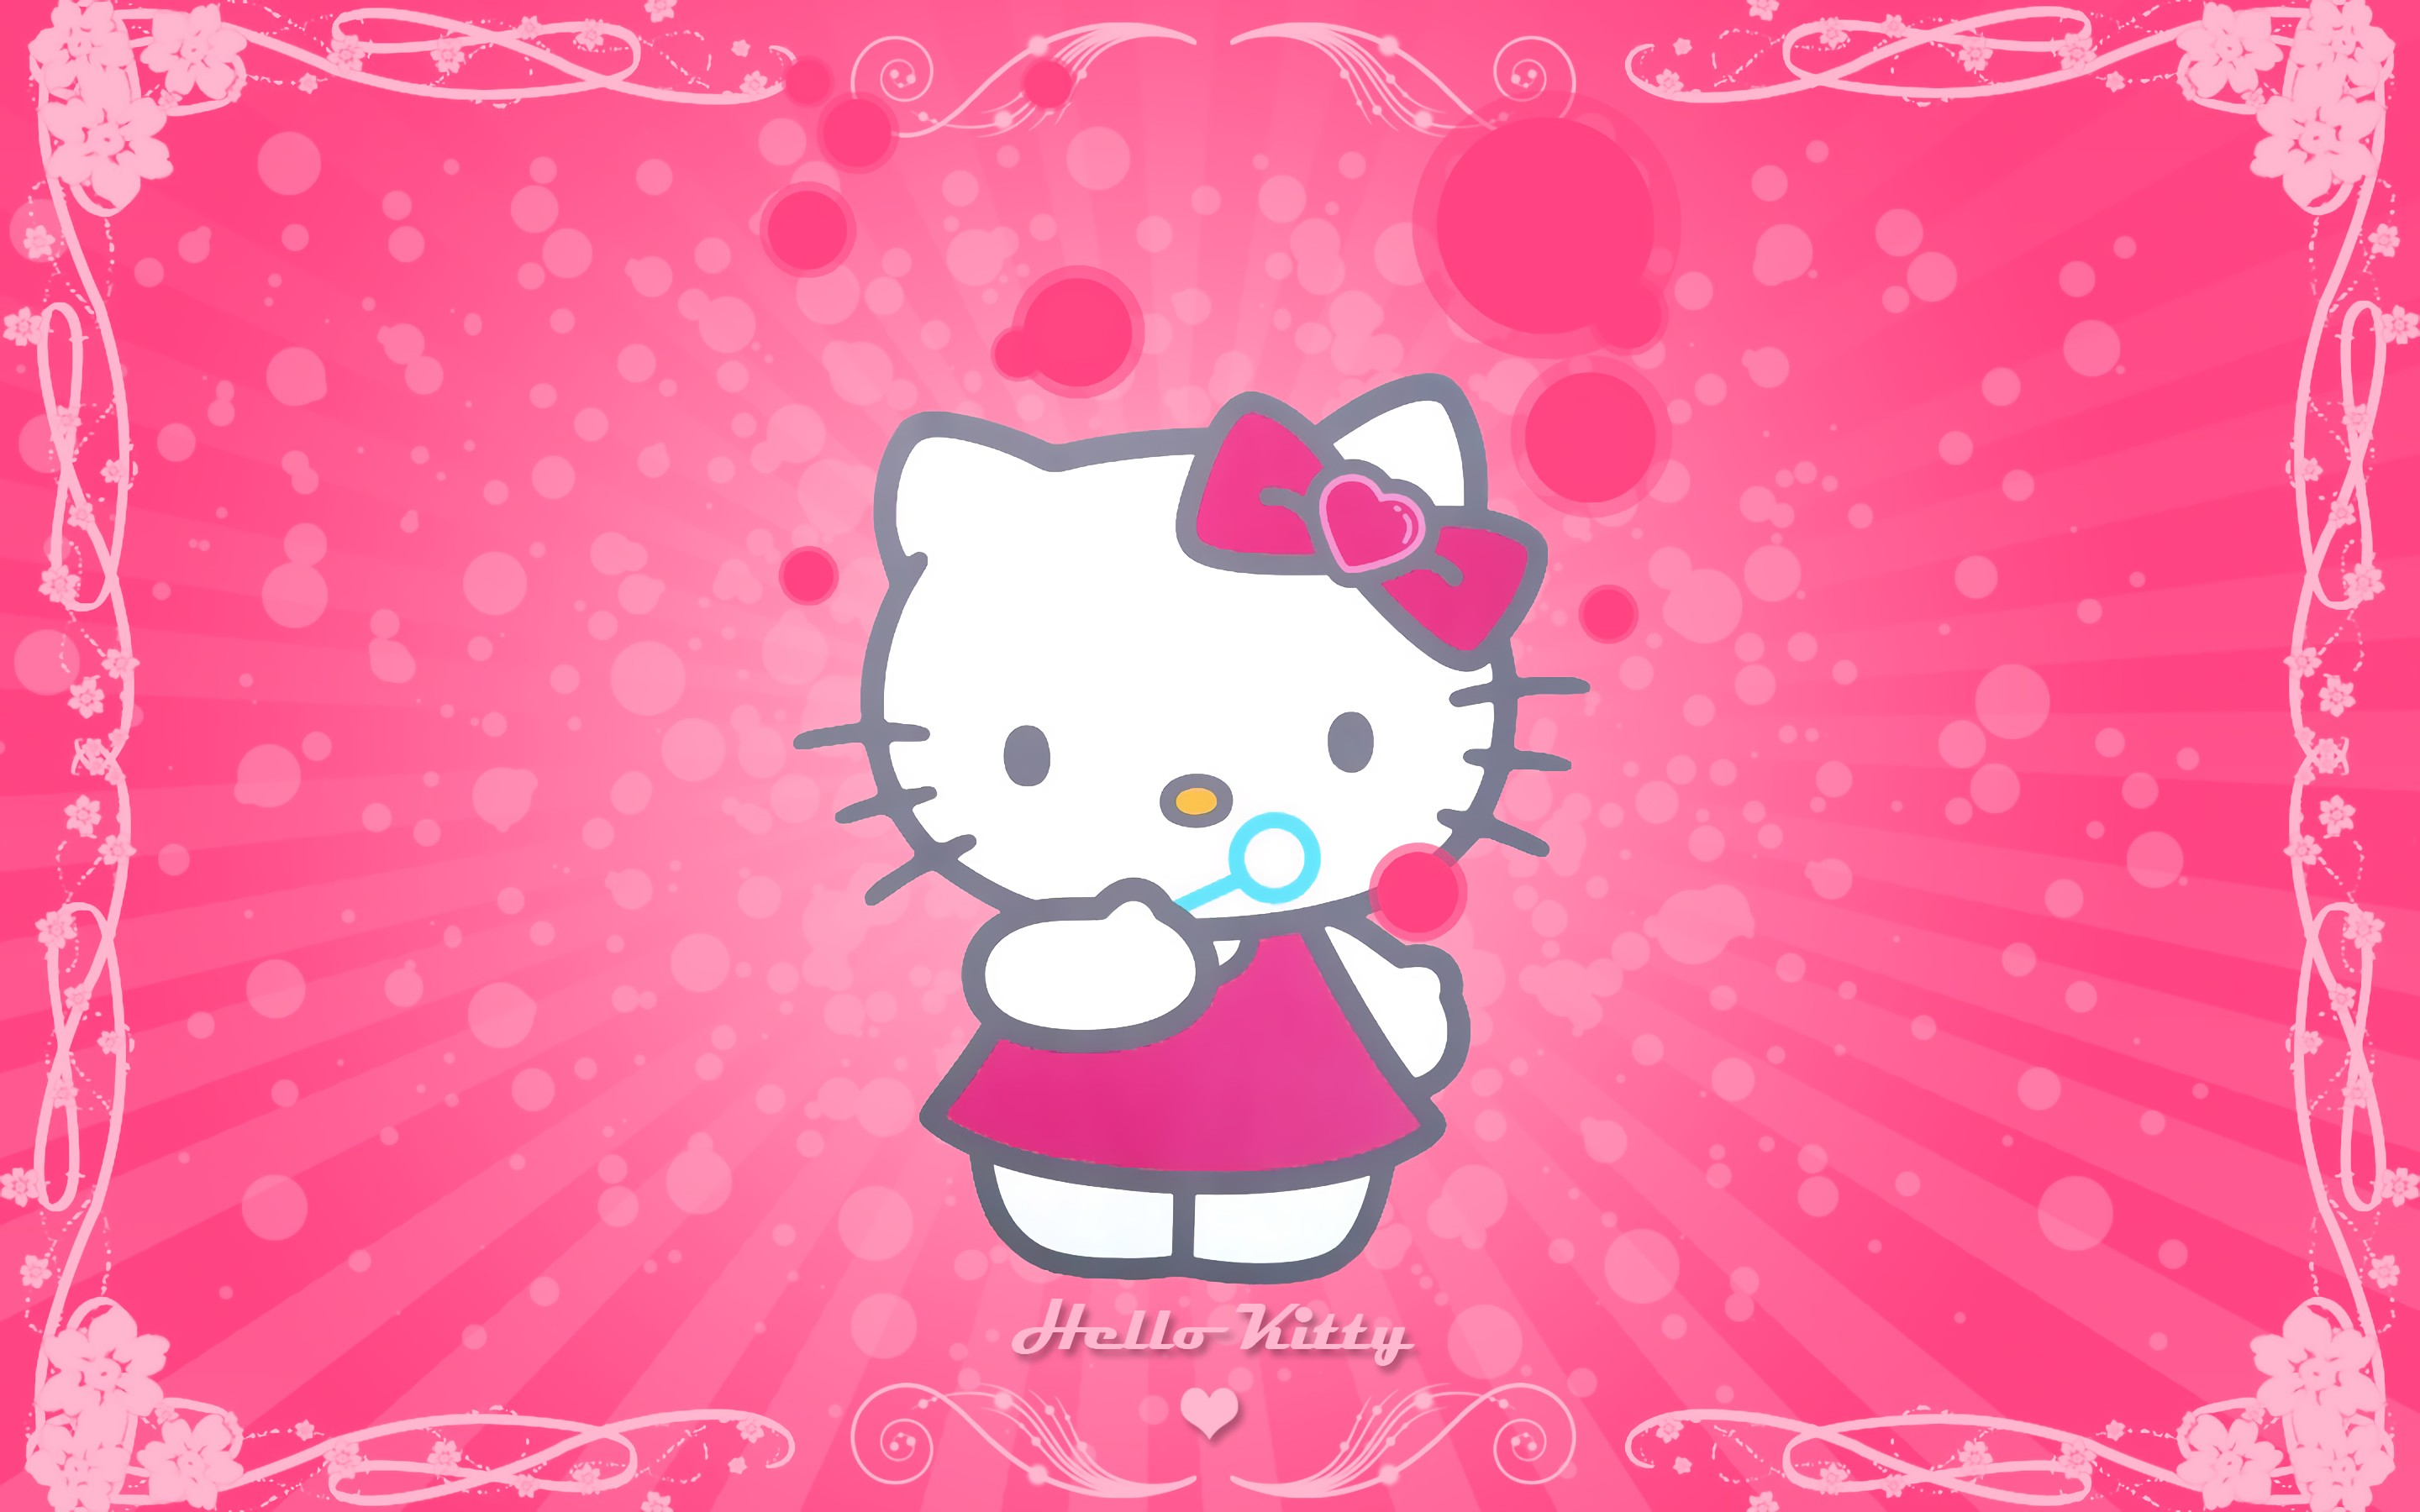 Hello Kitty Wallpaper Download Free Stunning Wallpapers For